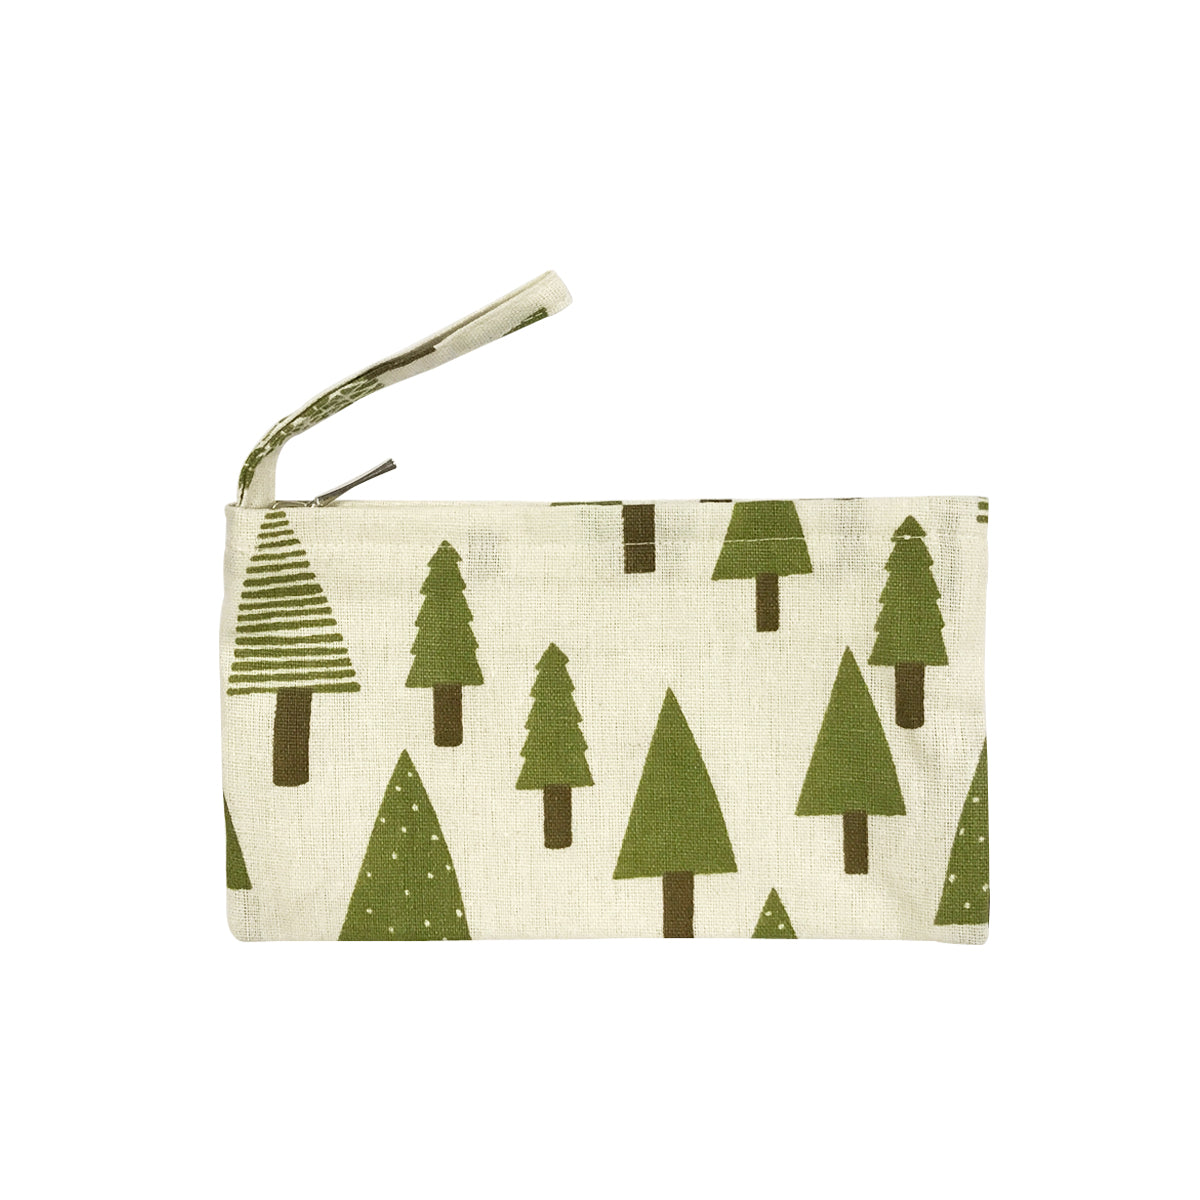 Wrapables Canvas Pencil Pouch Cosmetic Bag Coin Purse Clutch Wristlet (Set of 3), Woodland Wonder